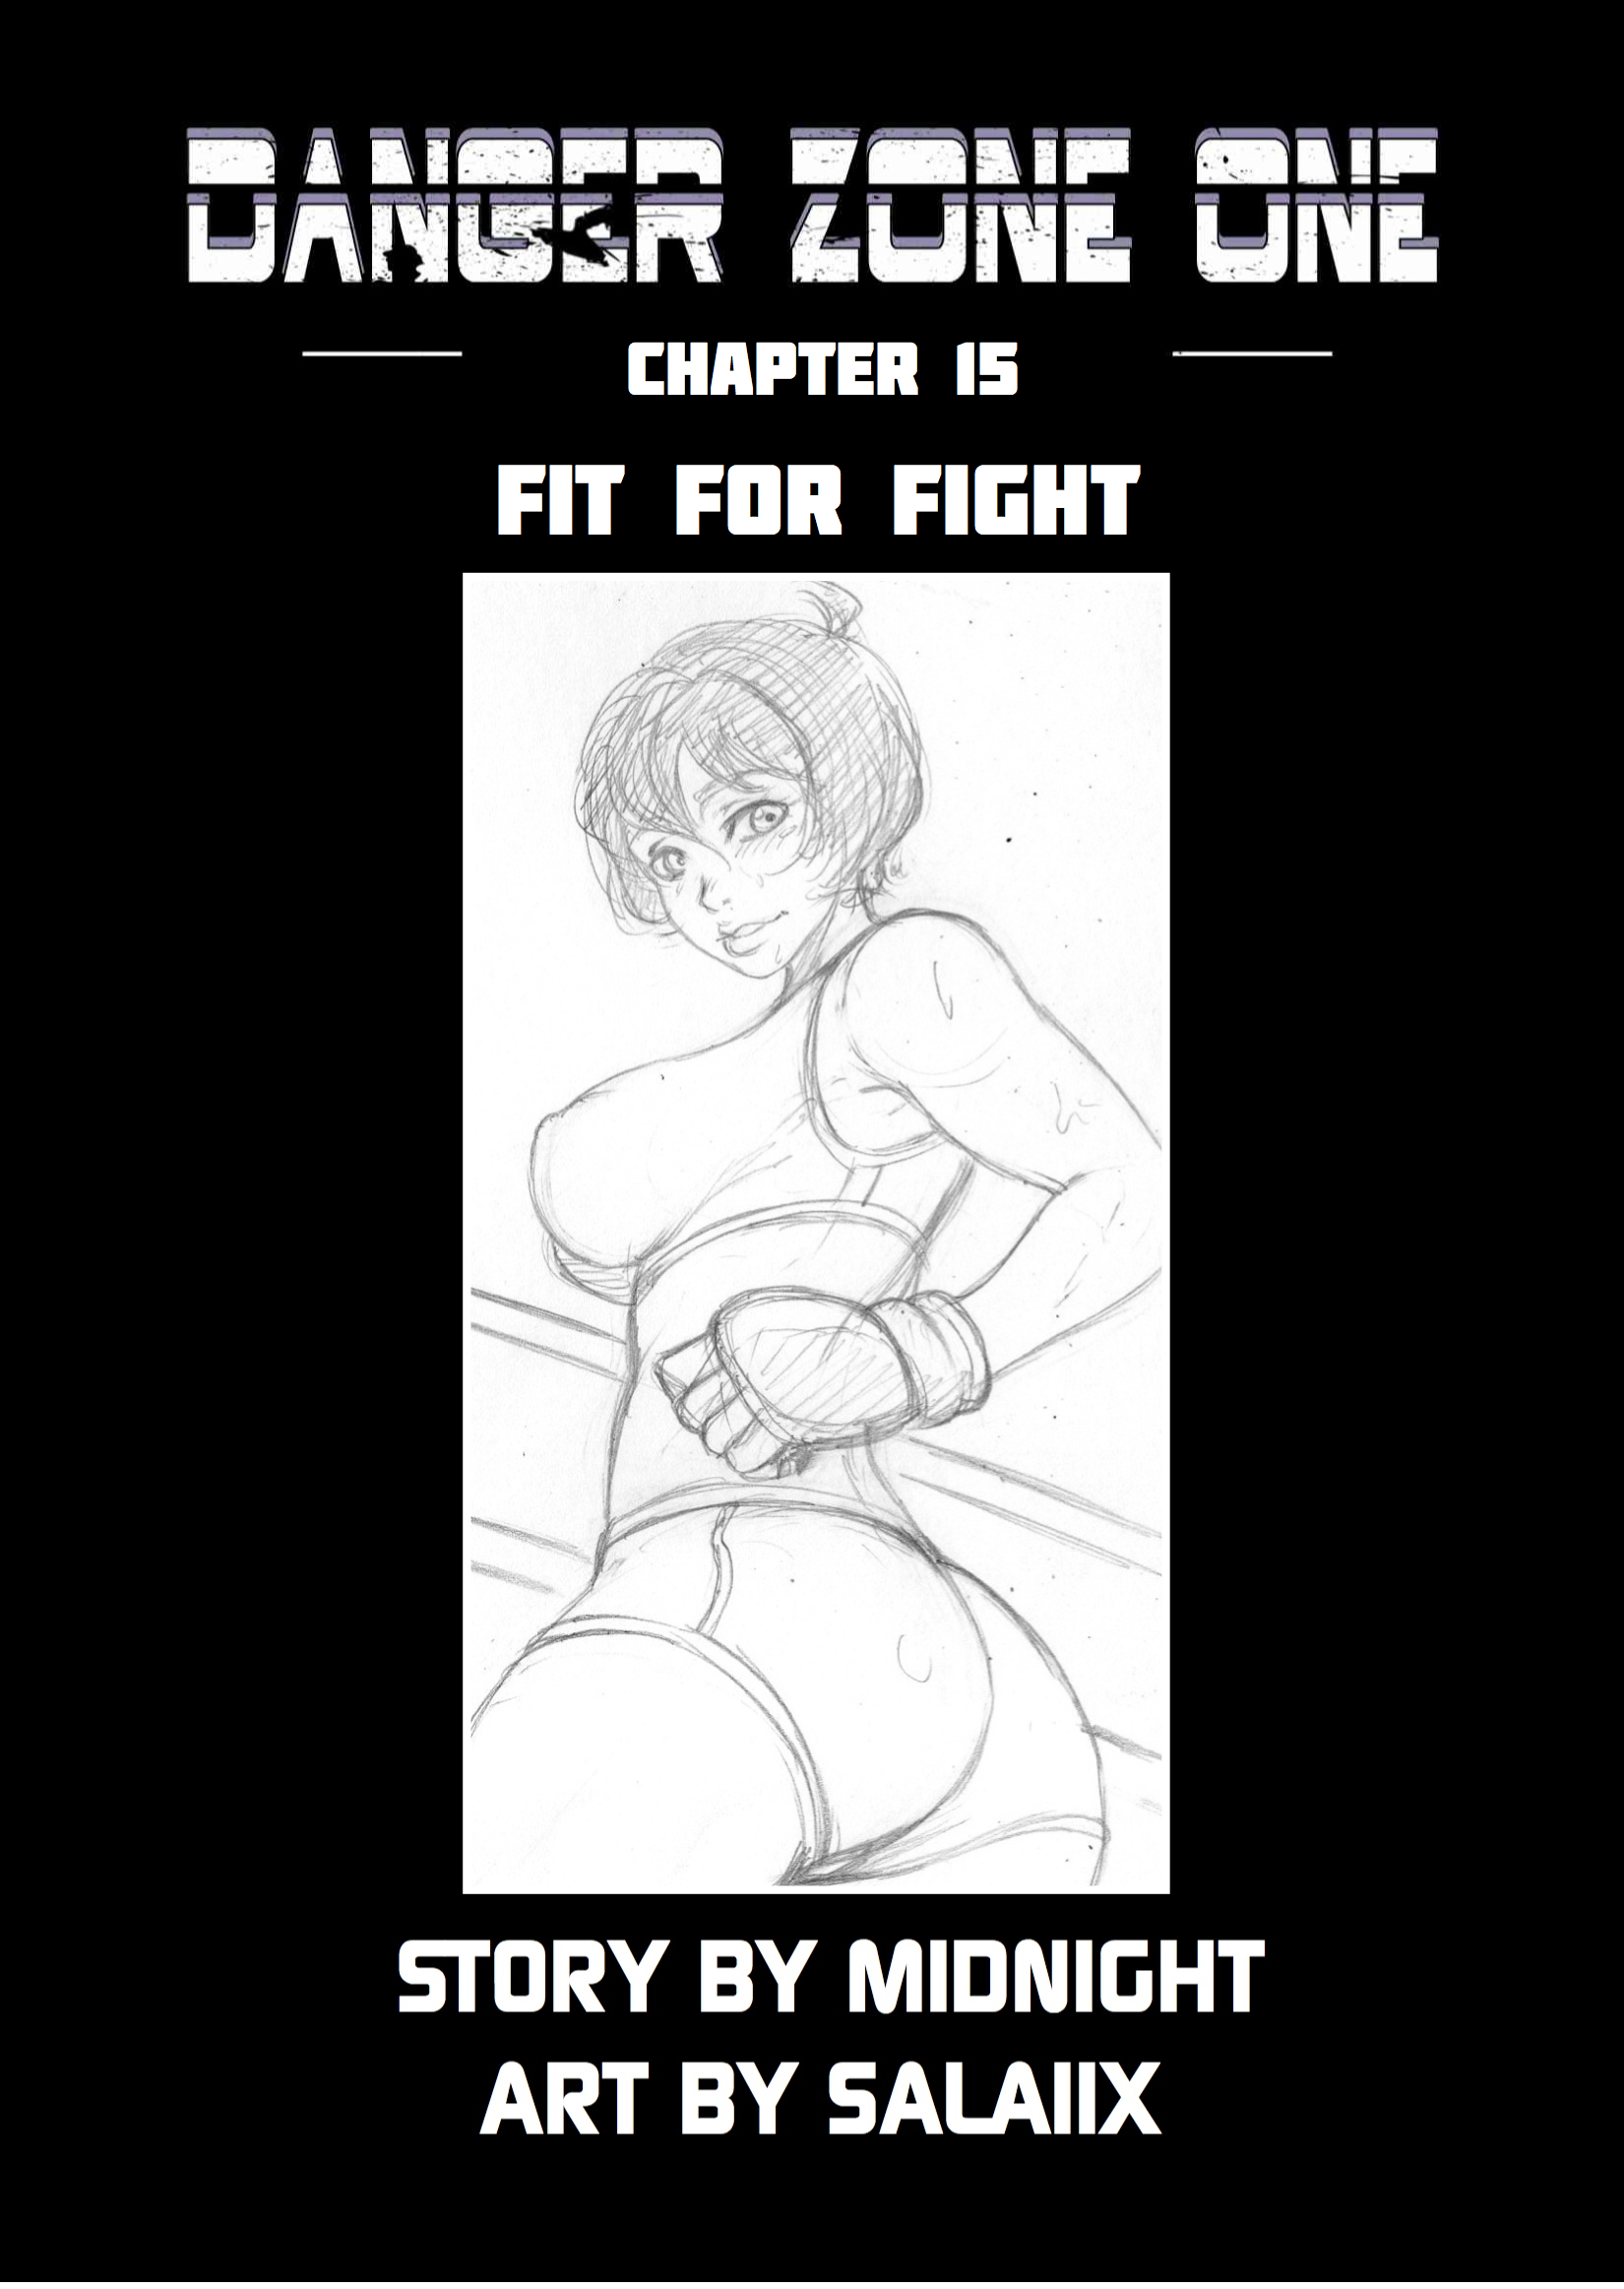 Chapter 15: Fit For Fight